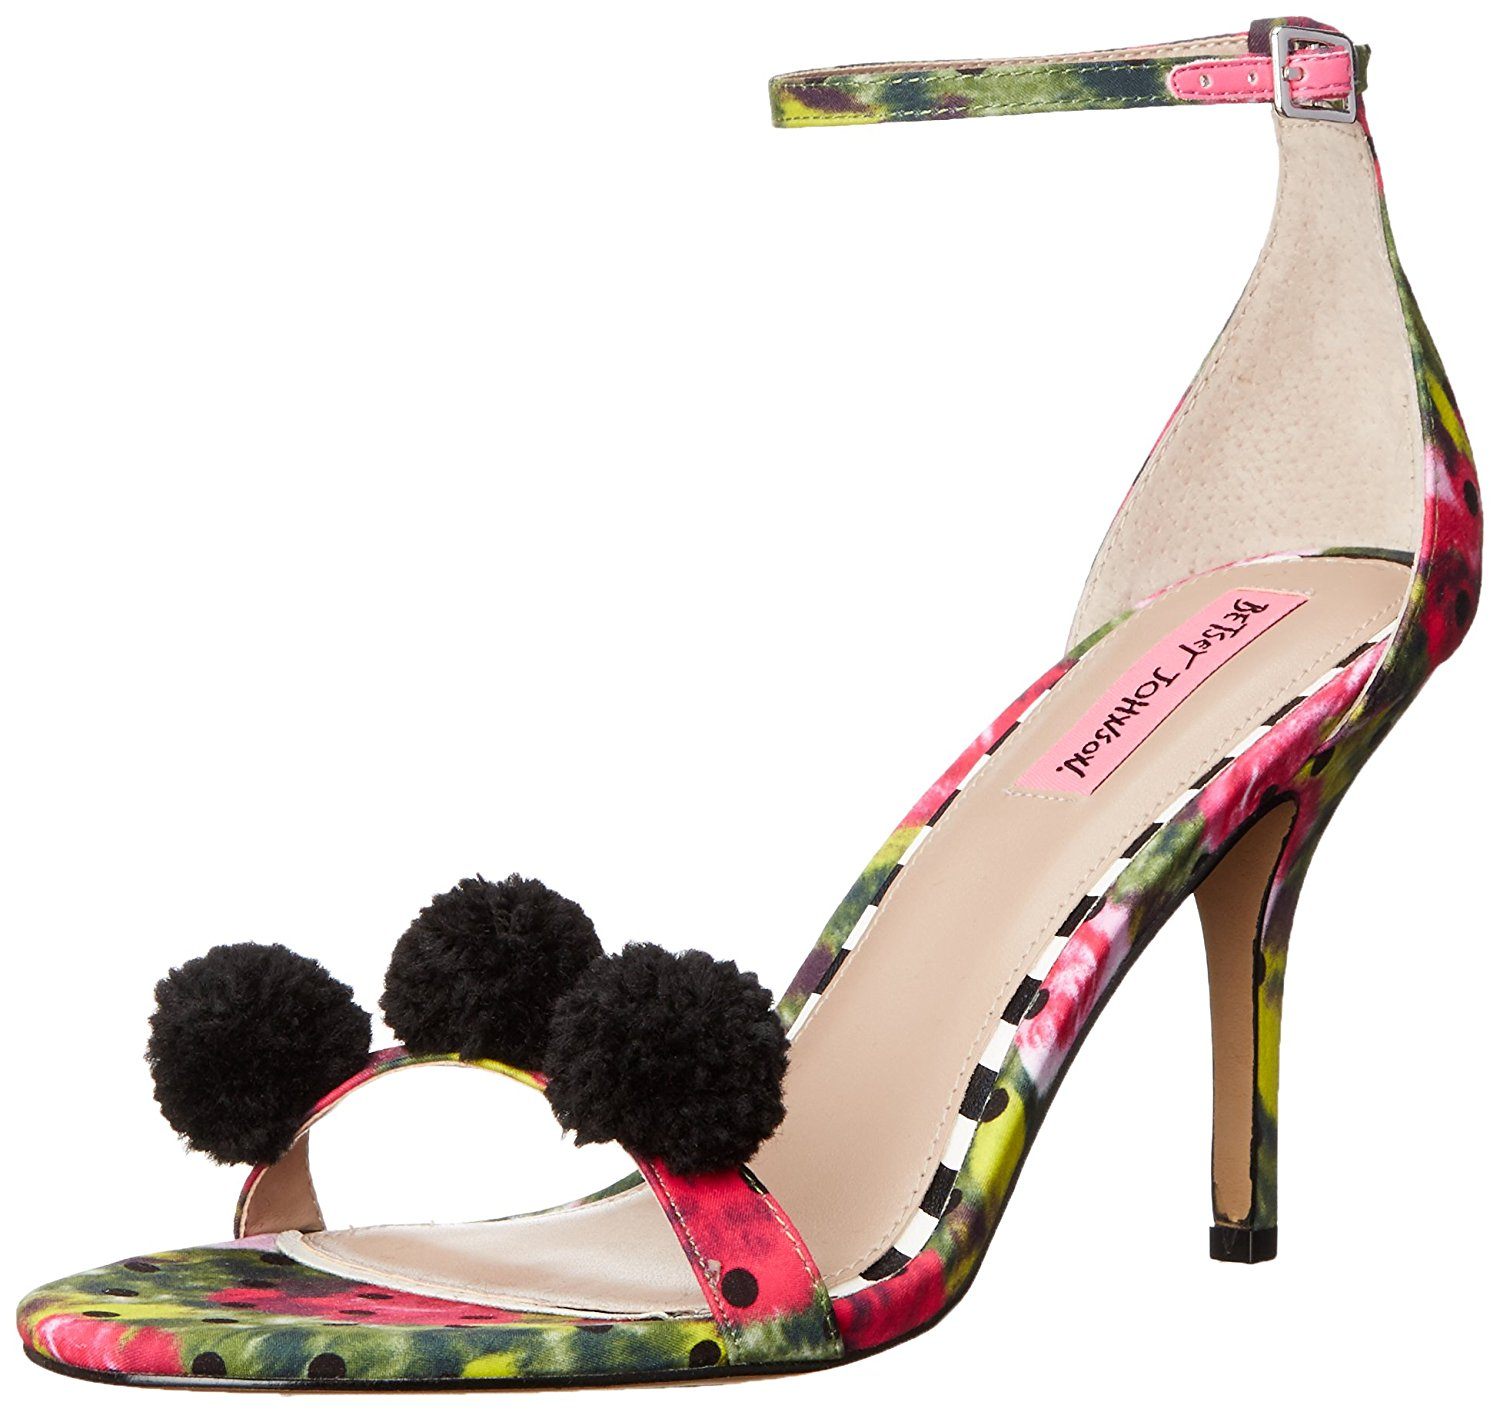 Betsey Johnson Womens Lylly Open Toe Ankle Strap Dorsay Green/Multi Size 8.5